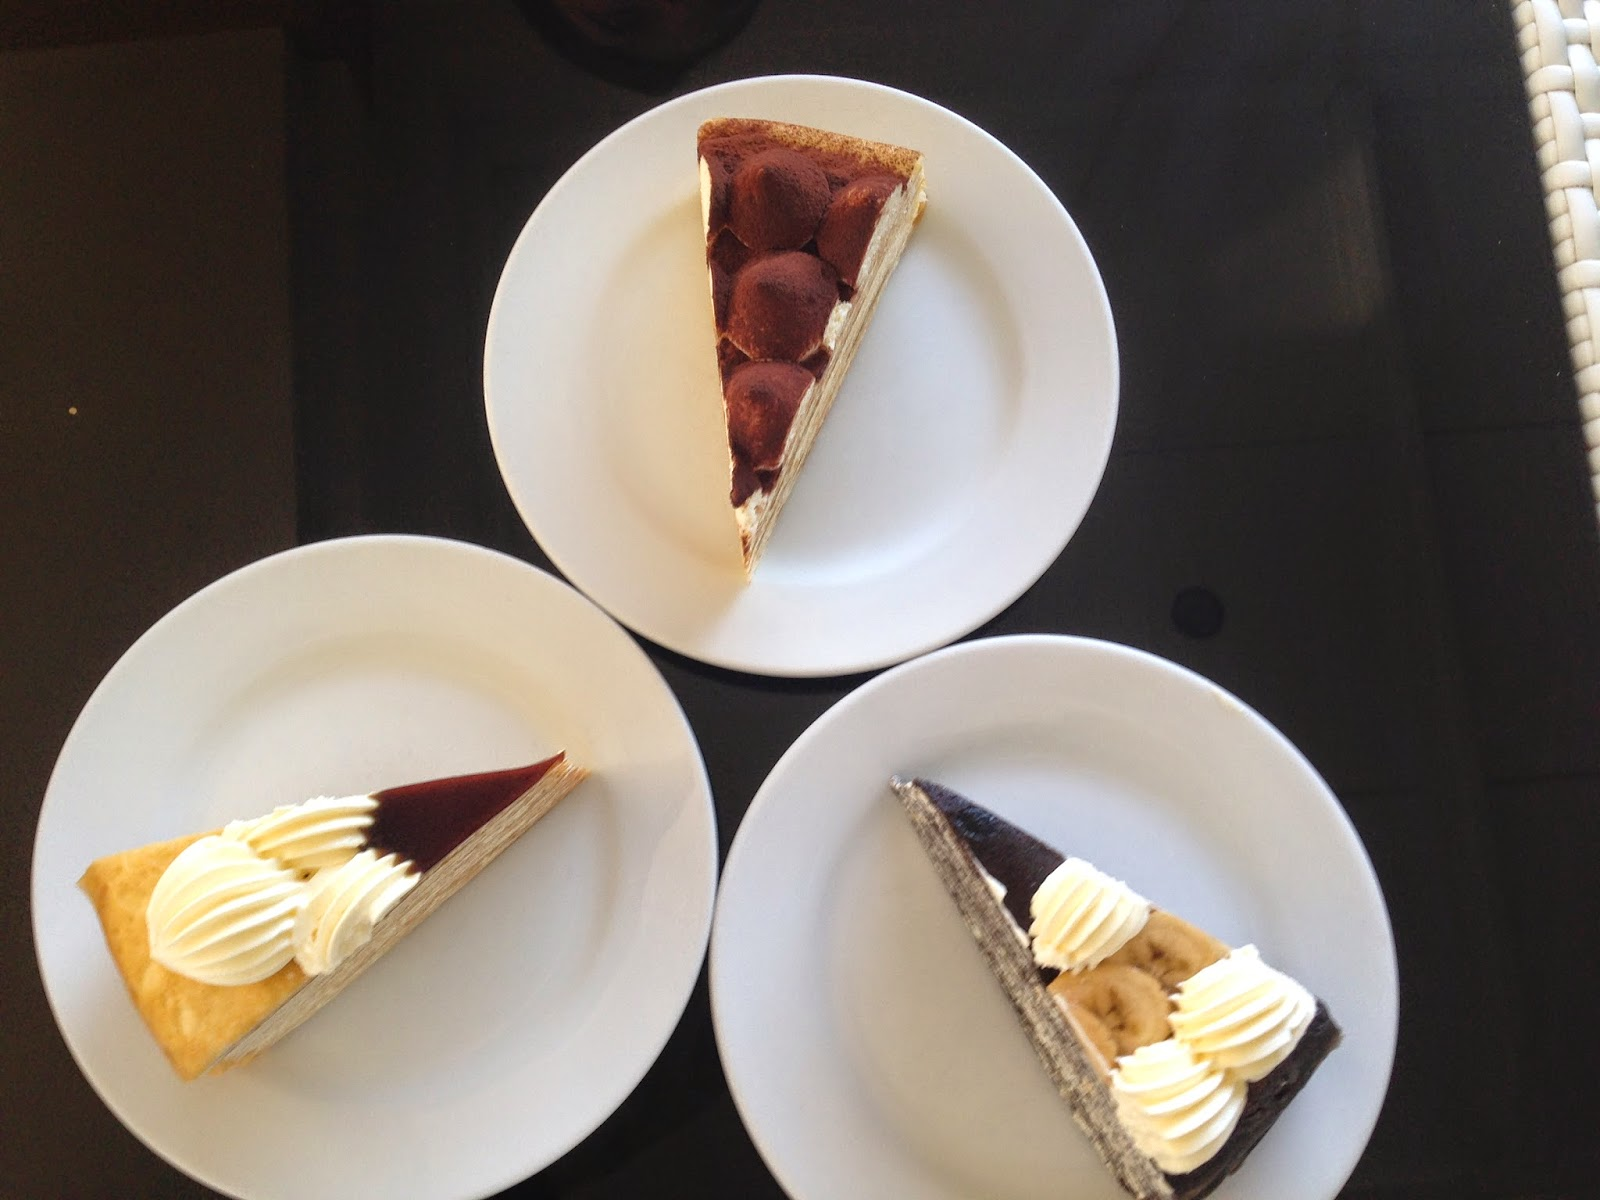 Mille Crepe, Tiramisu, Banana Chocolate, brown sugar melaka , Nadeje at Plaza Mahkota, @www.lifefoodcoffee.com